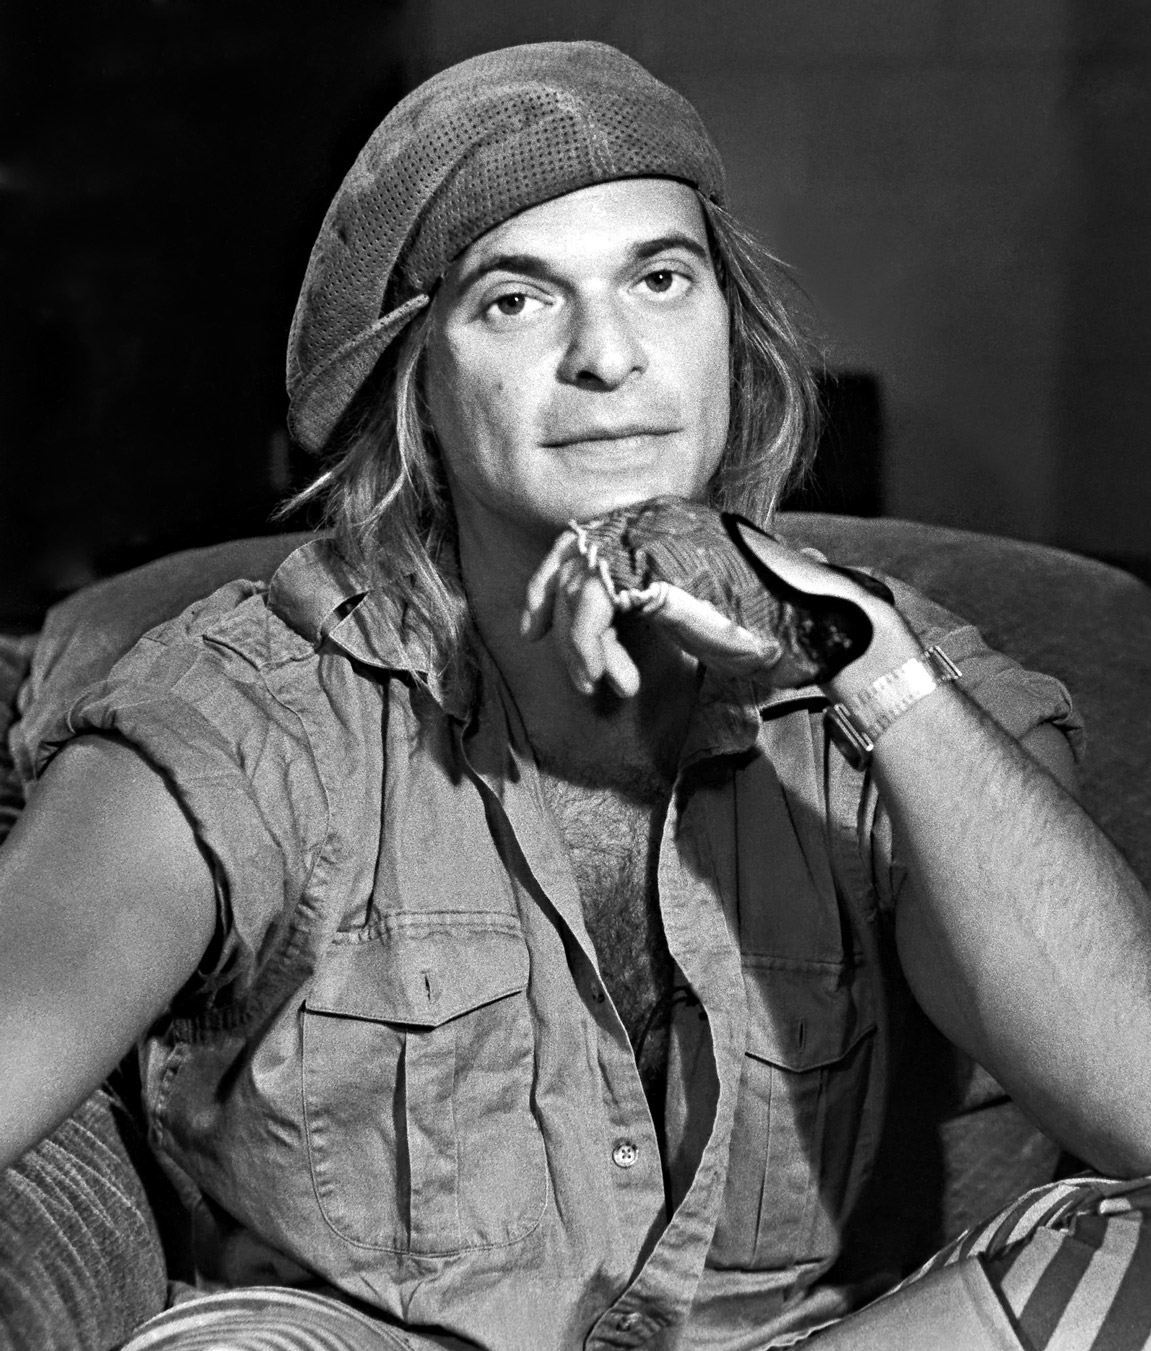 David Lee Roth - Van Halen